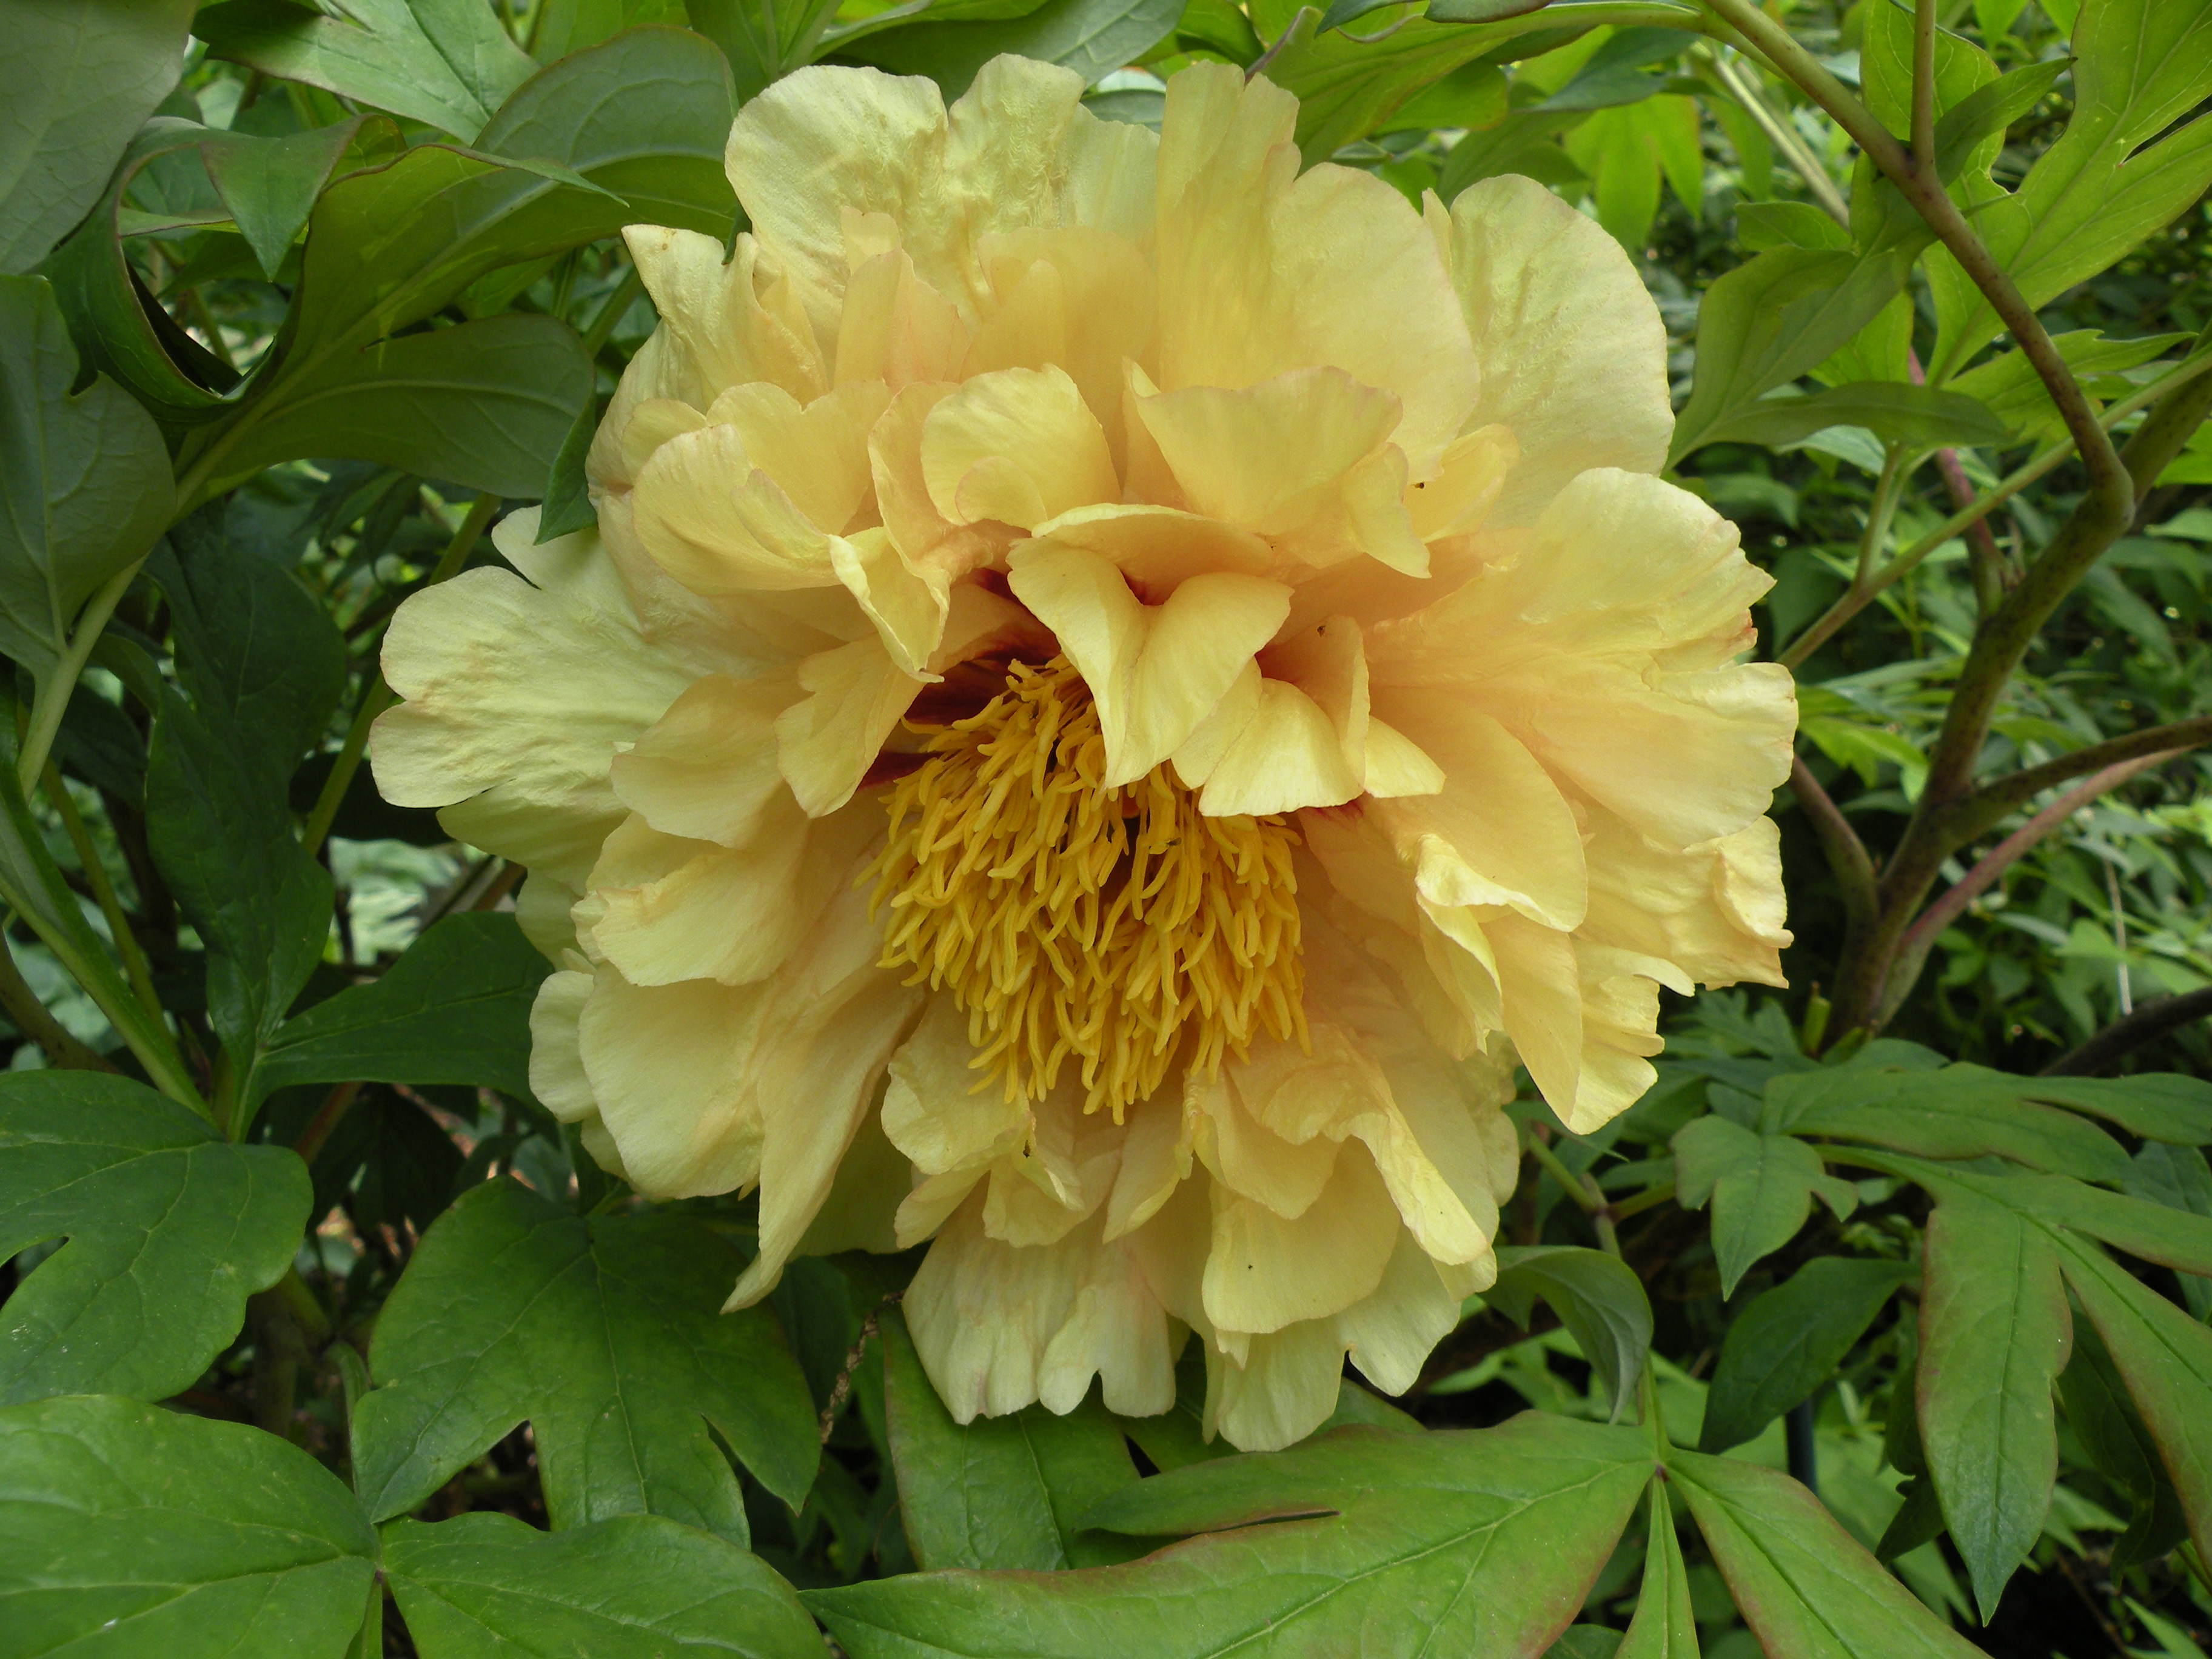 Mid season peony bloom at cricket hill garden 2012 crickethillgarden the less desirable characteristics of many of the lutea hybrids downward facing or nodding flowers a trait inherited from the species p lutea peony mightylinksfo